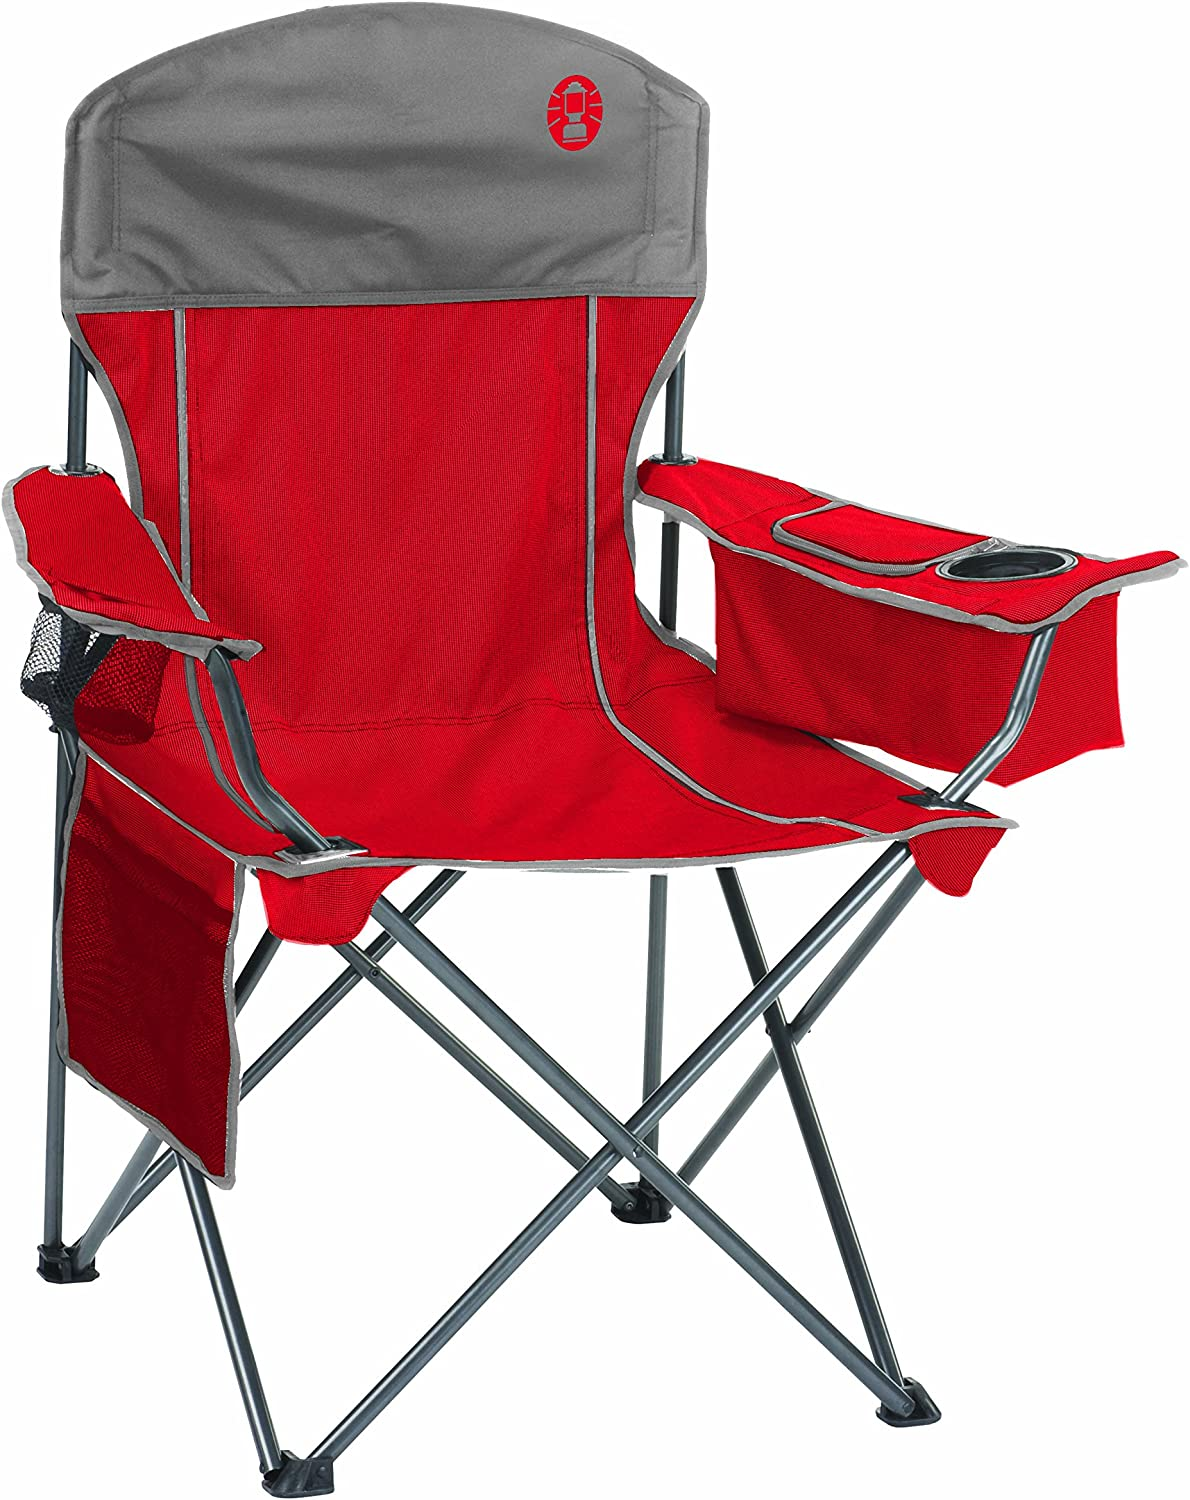 Coleman Oversized Quad Chair with Cooler, Holds up to 300Pound